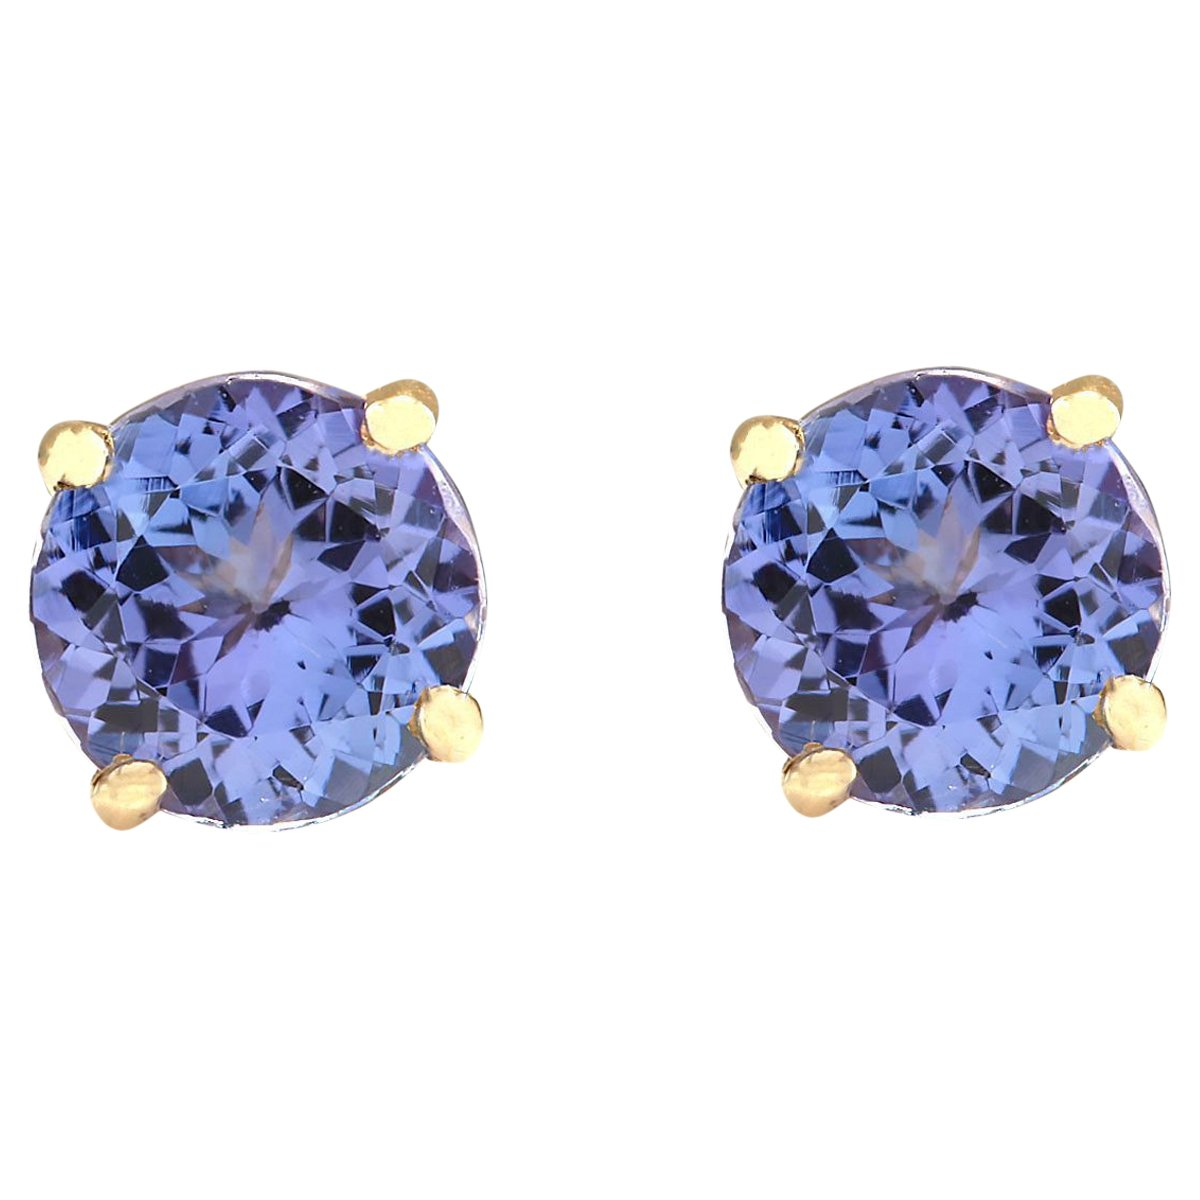 2.3 Carat Natural Blue Tanzanite 18K Yellow Gold Solitaire Stud Earrings for Women Exclusively Handcrafted in USA